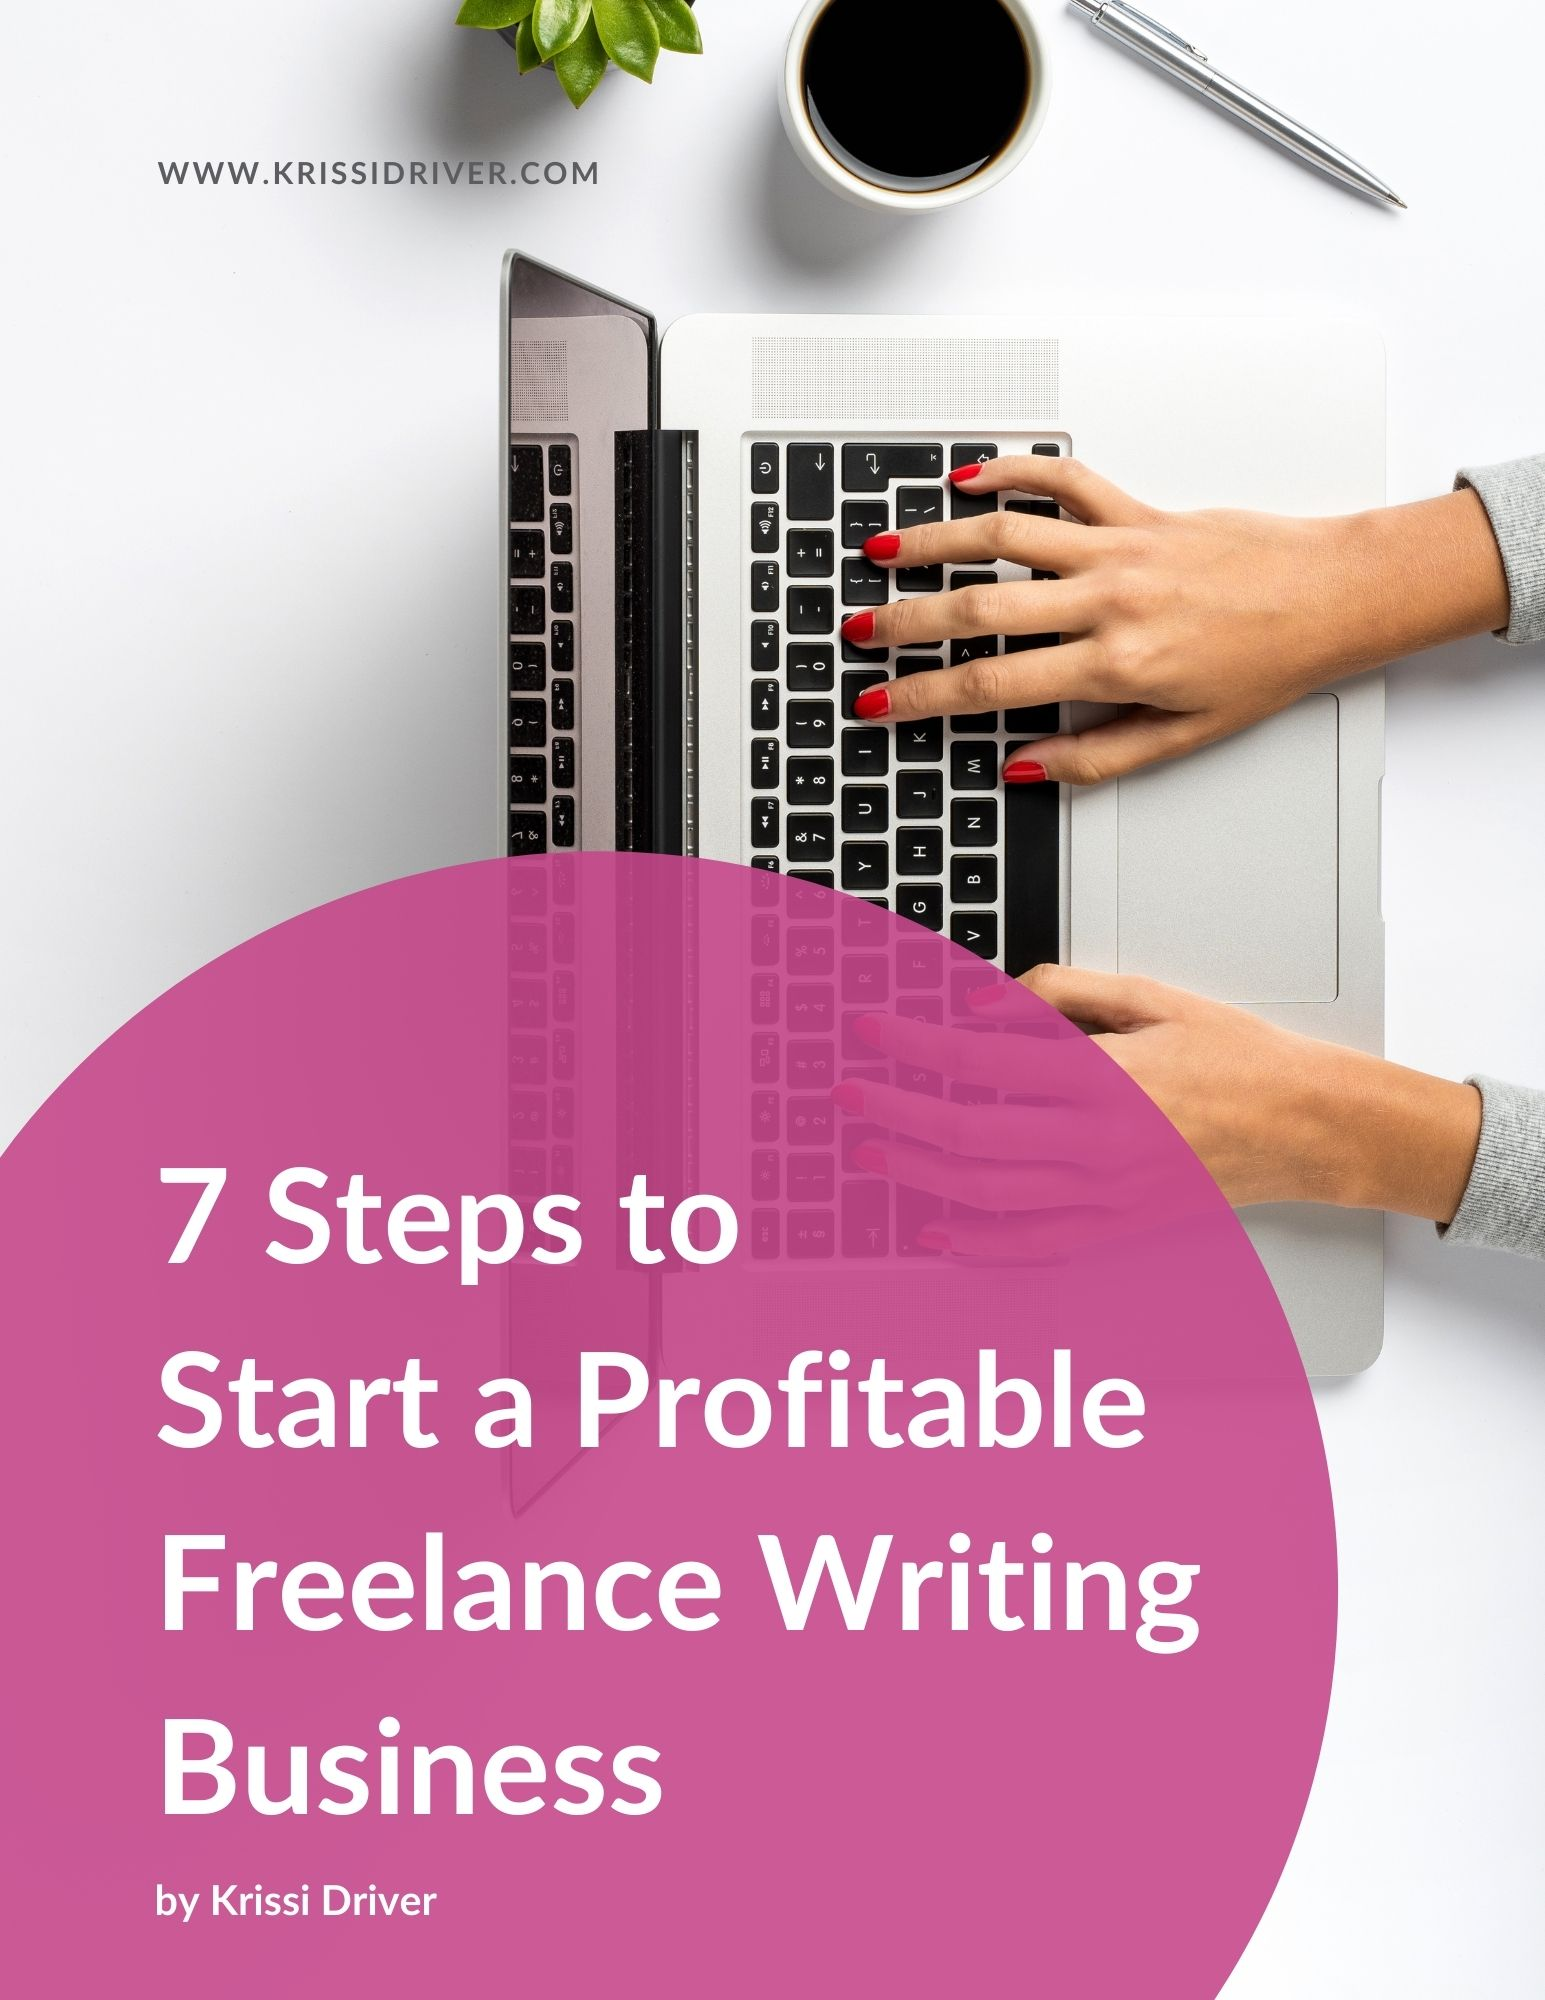 7 Steps to Start a Profitable Freelance Writing Business